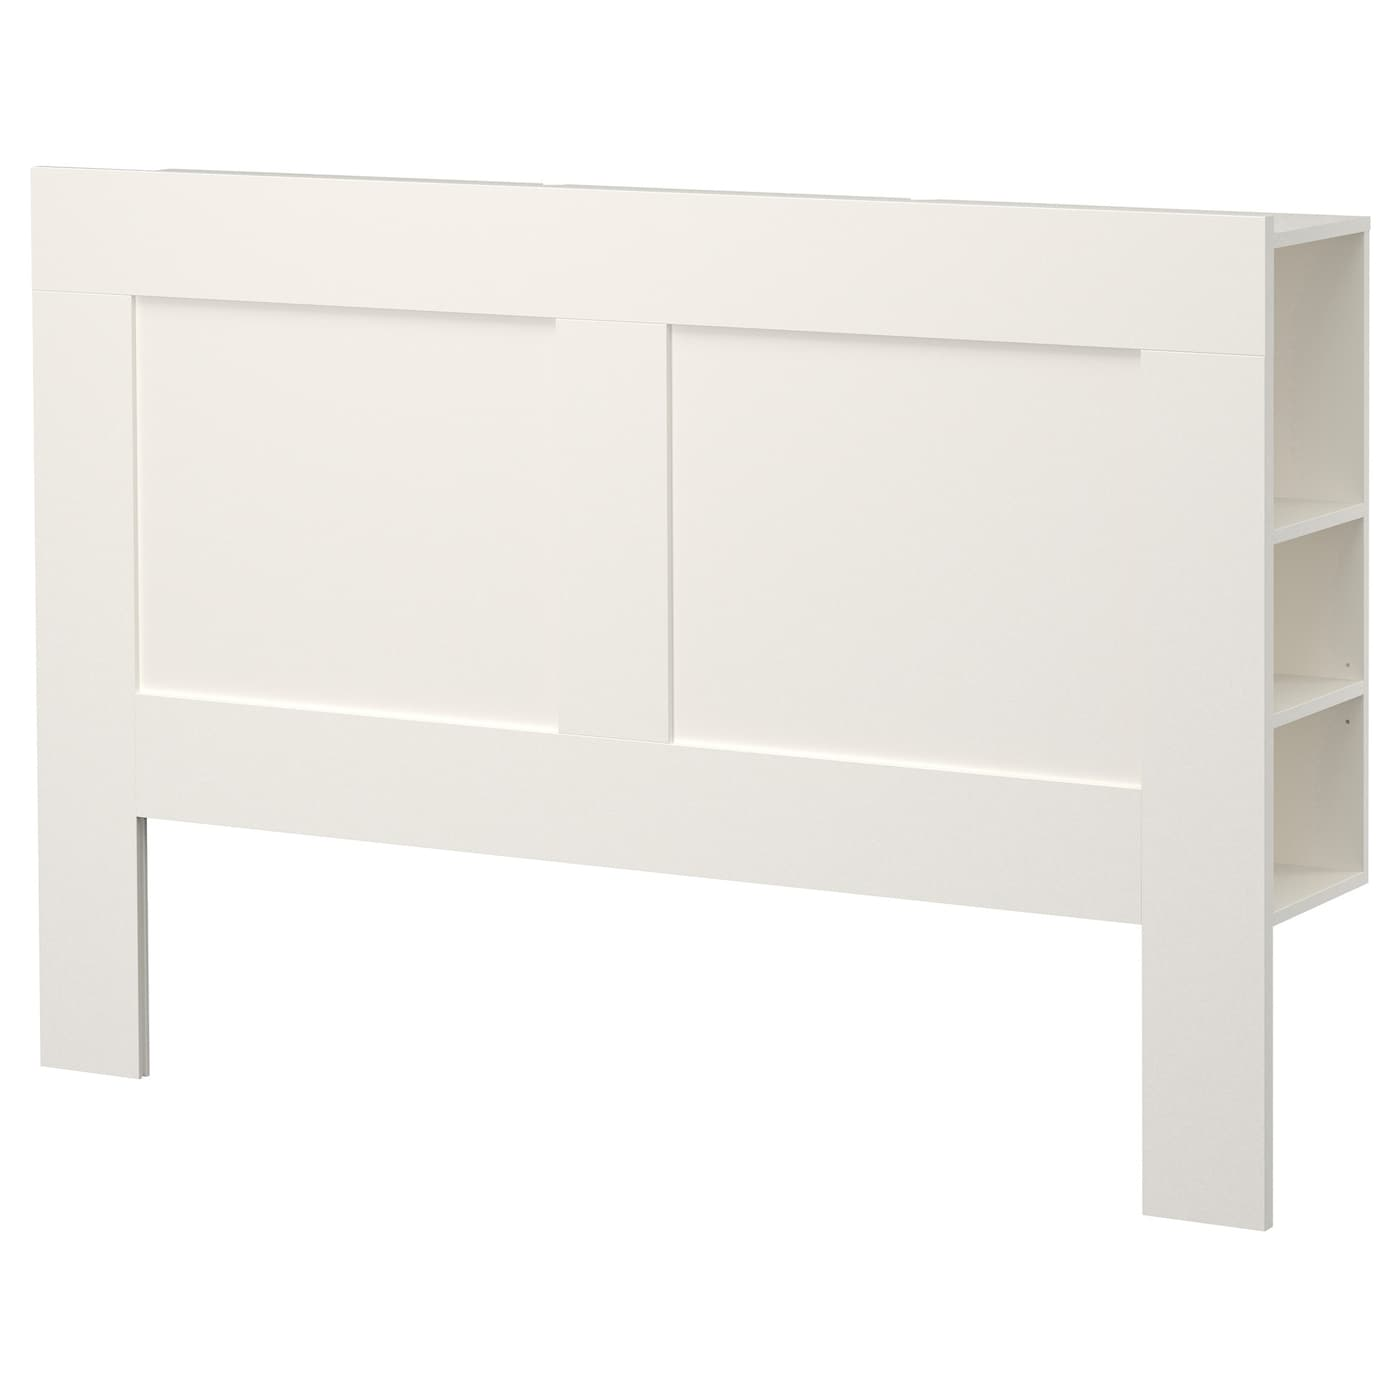 Brimnes headboard with storage compartment white standard - Tete de lit maison du monde 160 ...